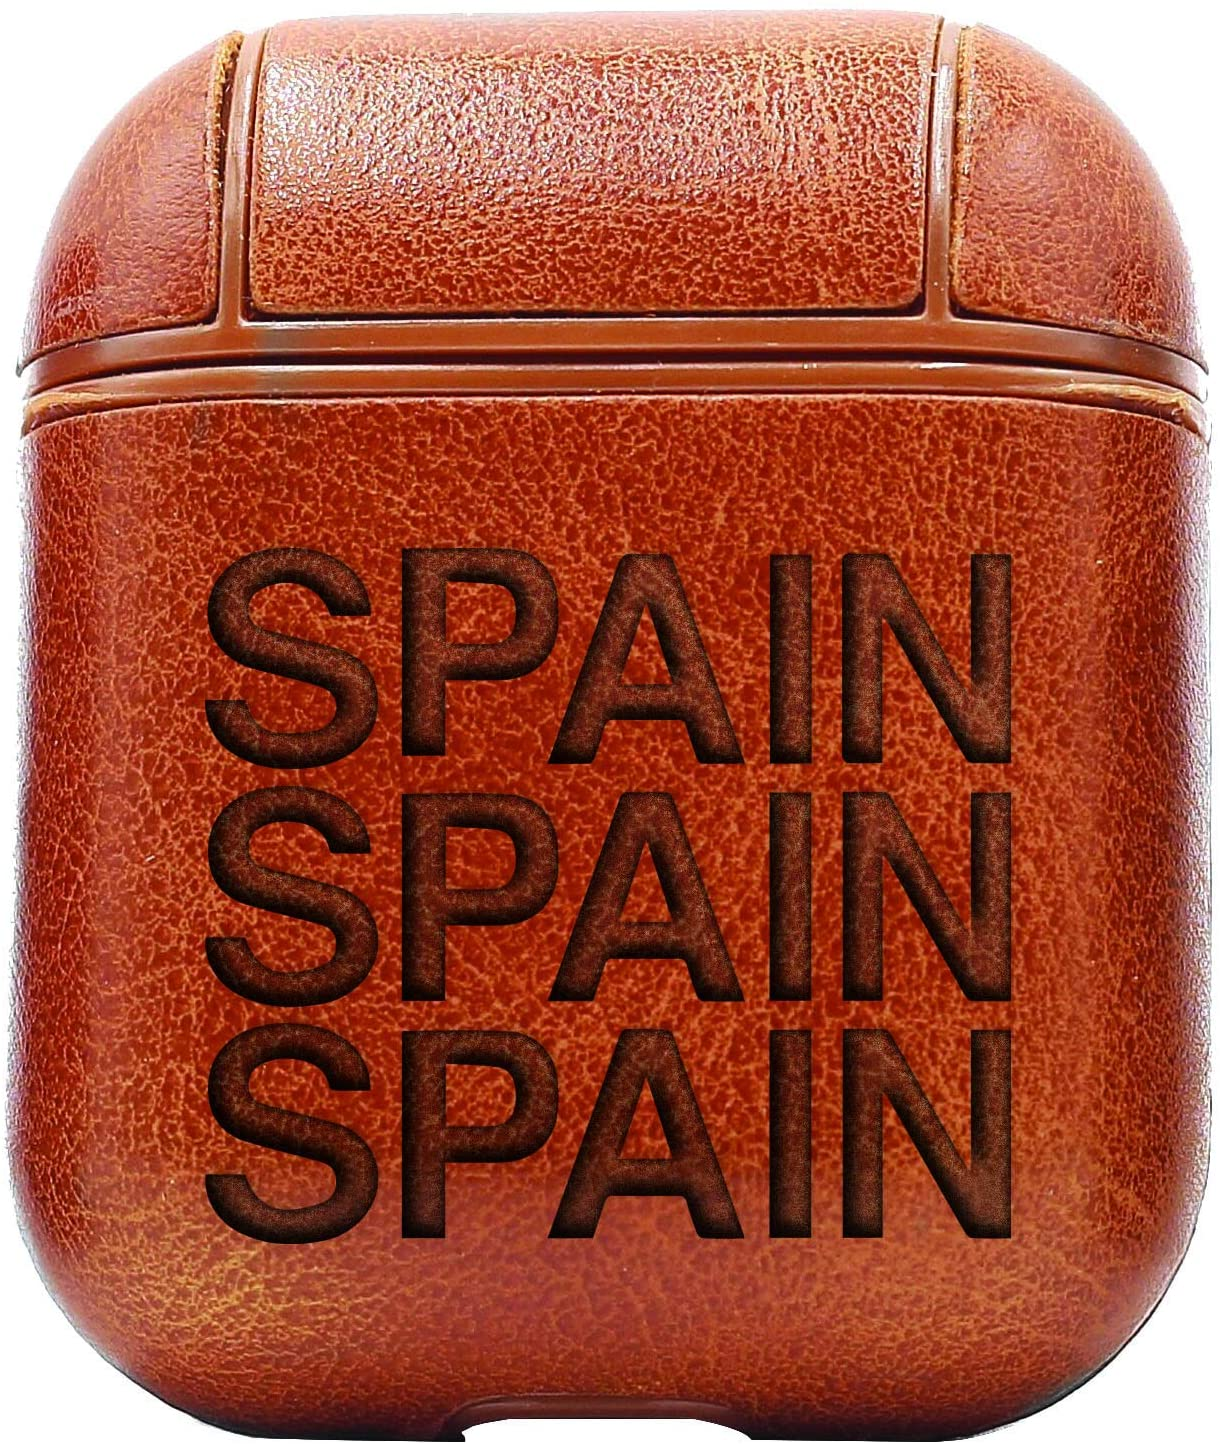 Spain (Vintage Brown) Air Pods Protective Leather Case Cover - a New Class of Luxury to Your AirPods - Premium PU Leather and Handmade exquisitely by Master Craftsmen